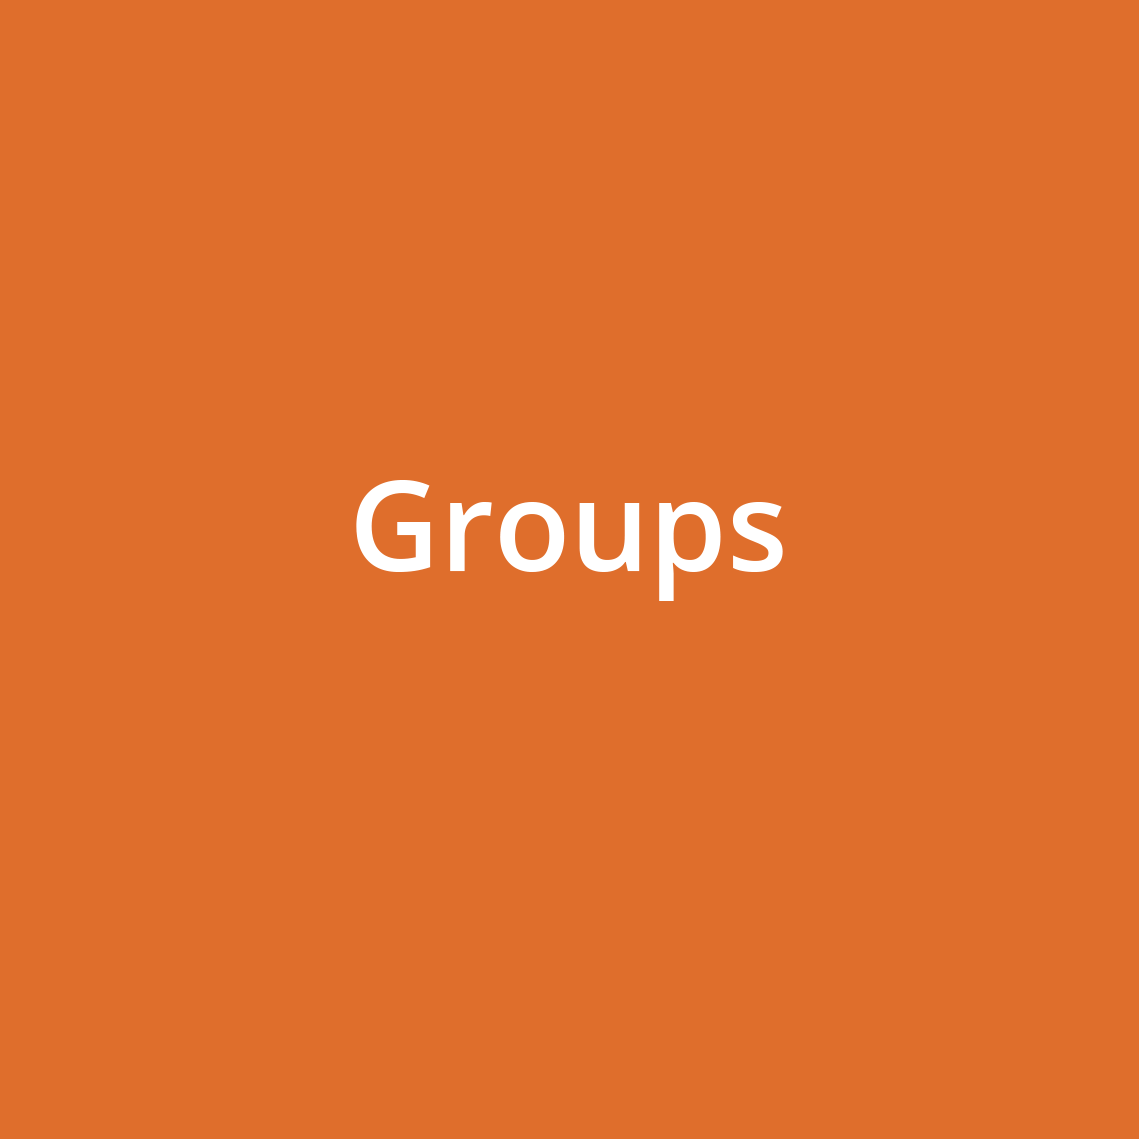 groups orange.png